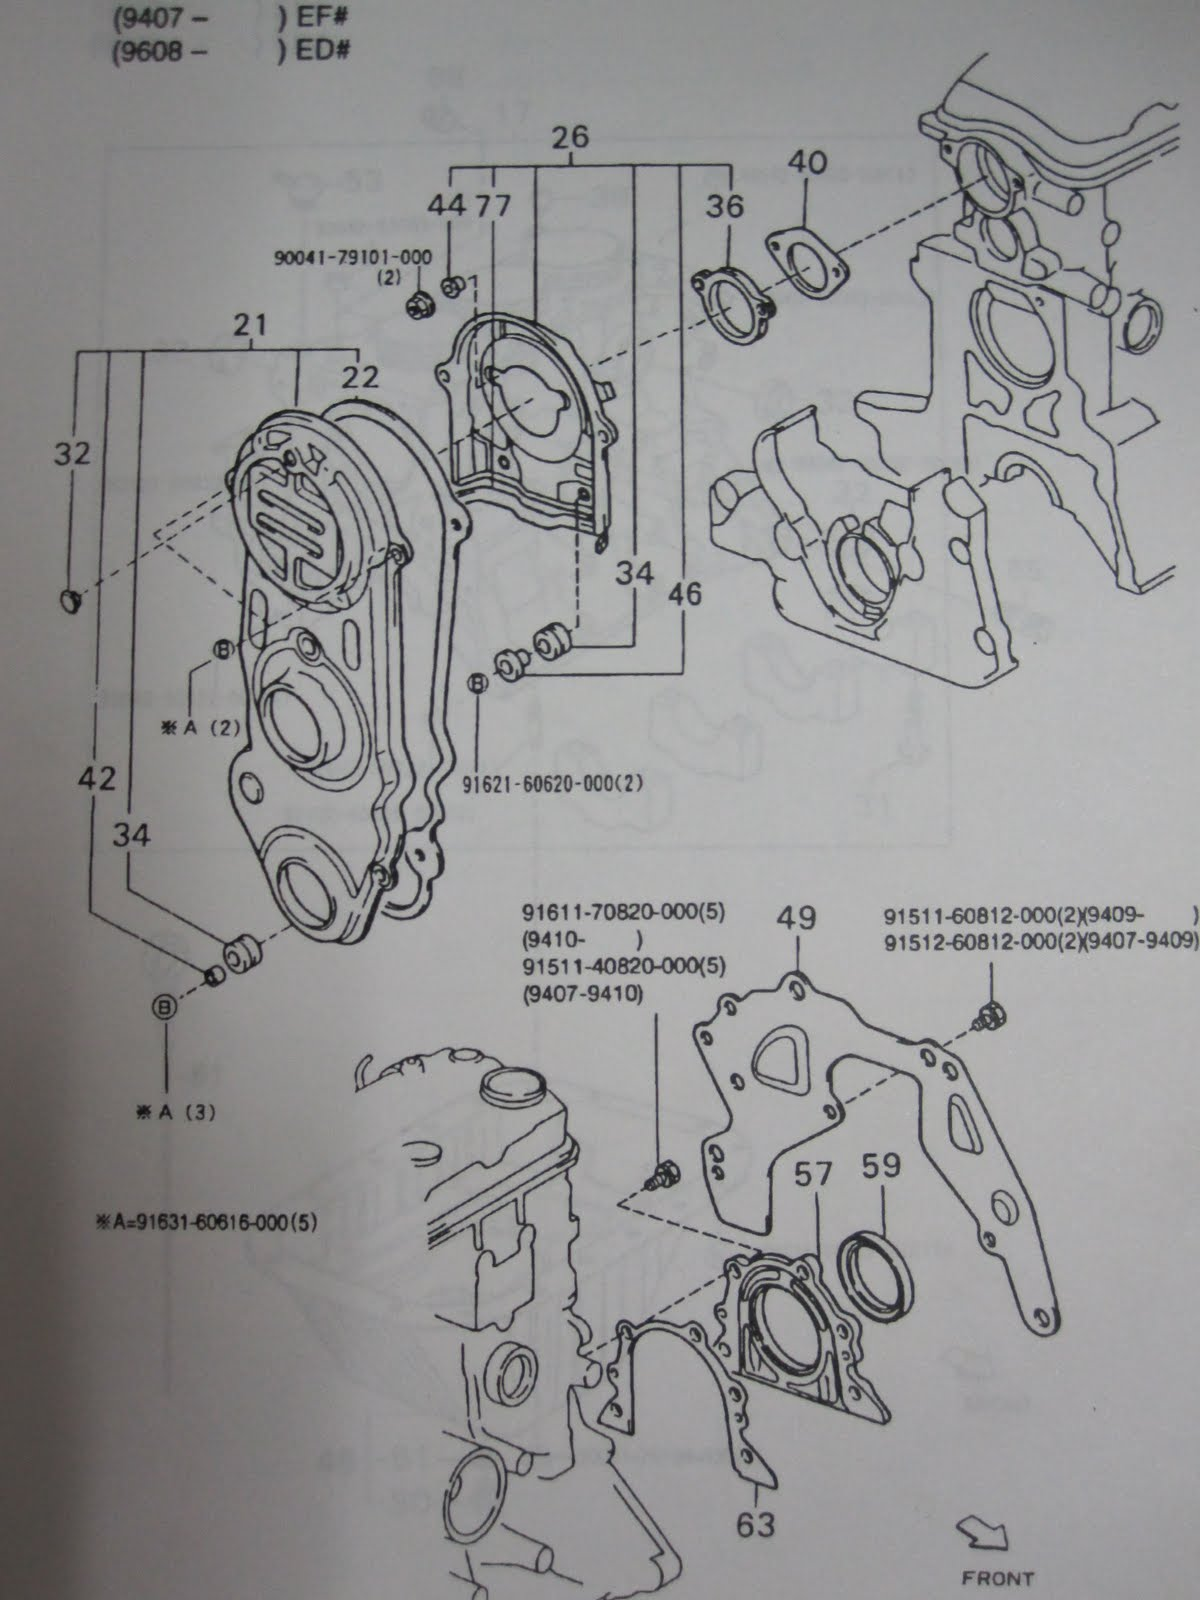 for one example, the upper photo show 2 types of rubber grommet that can be